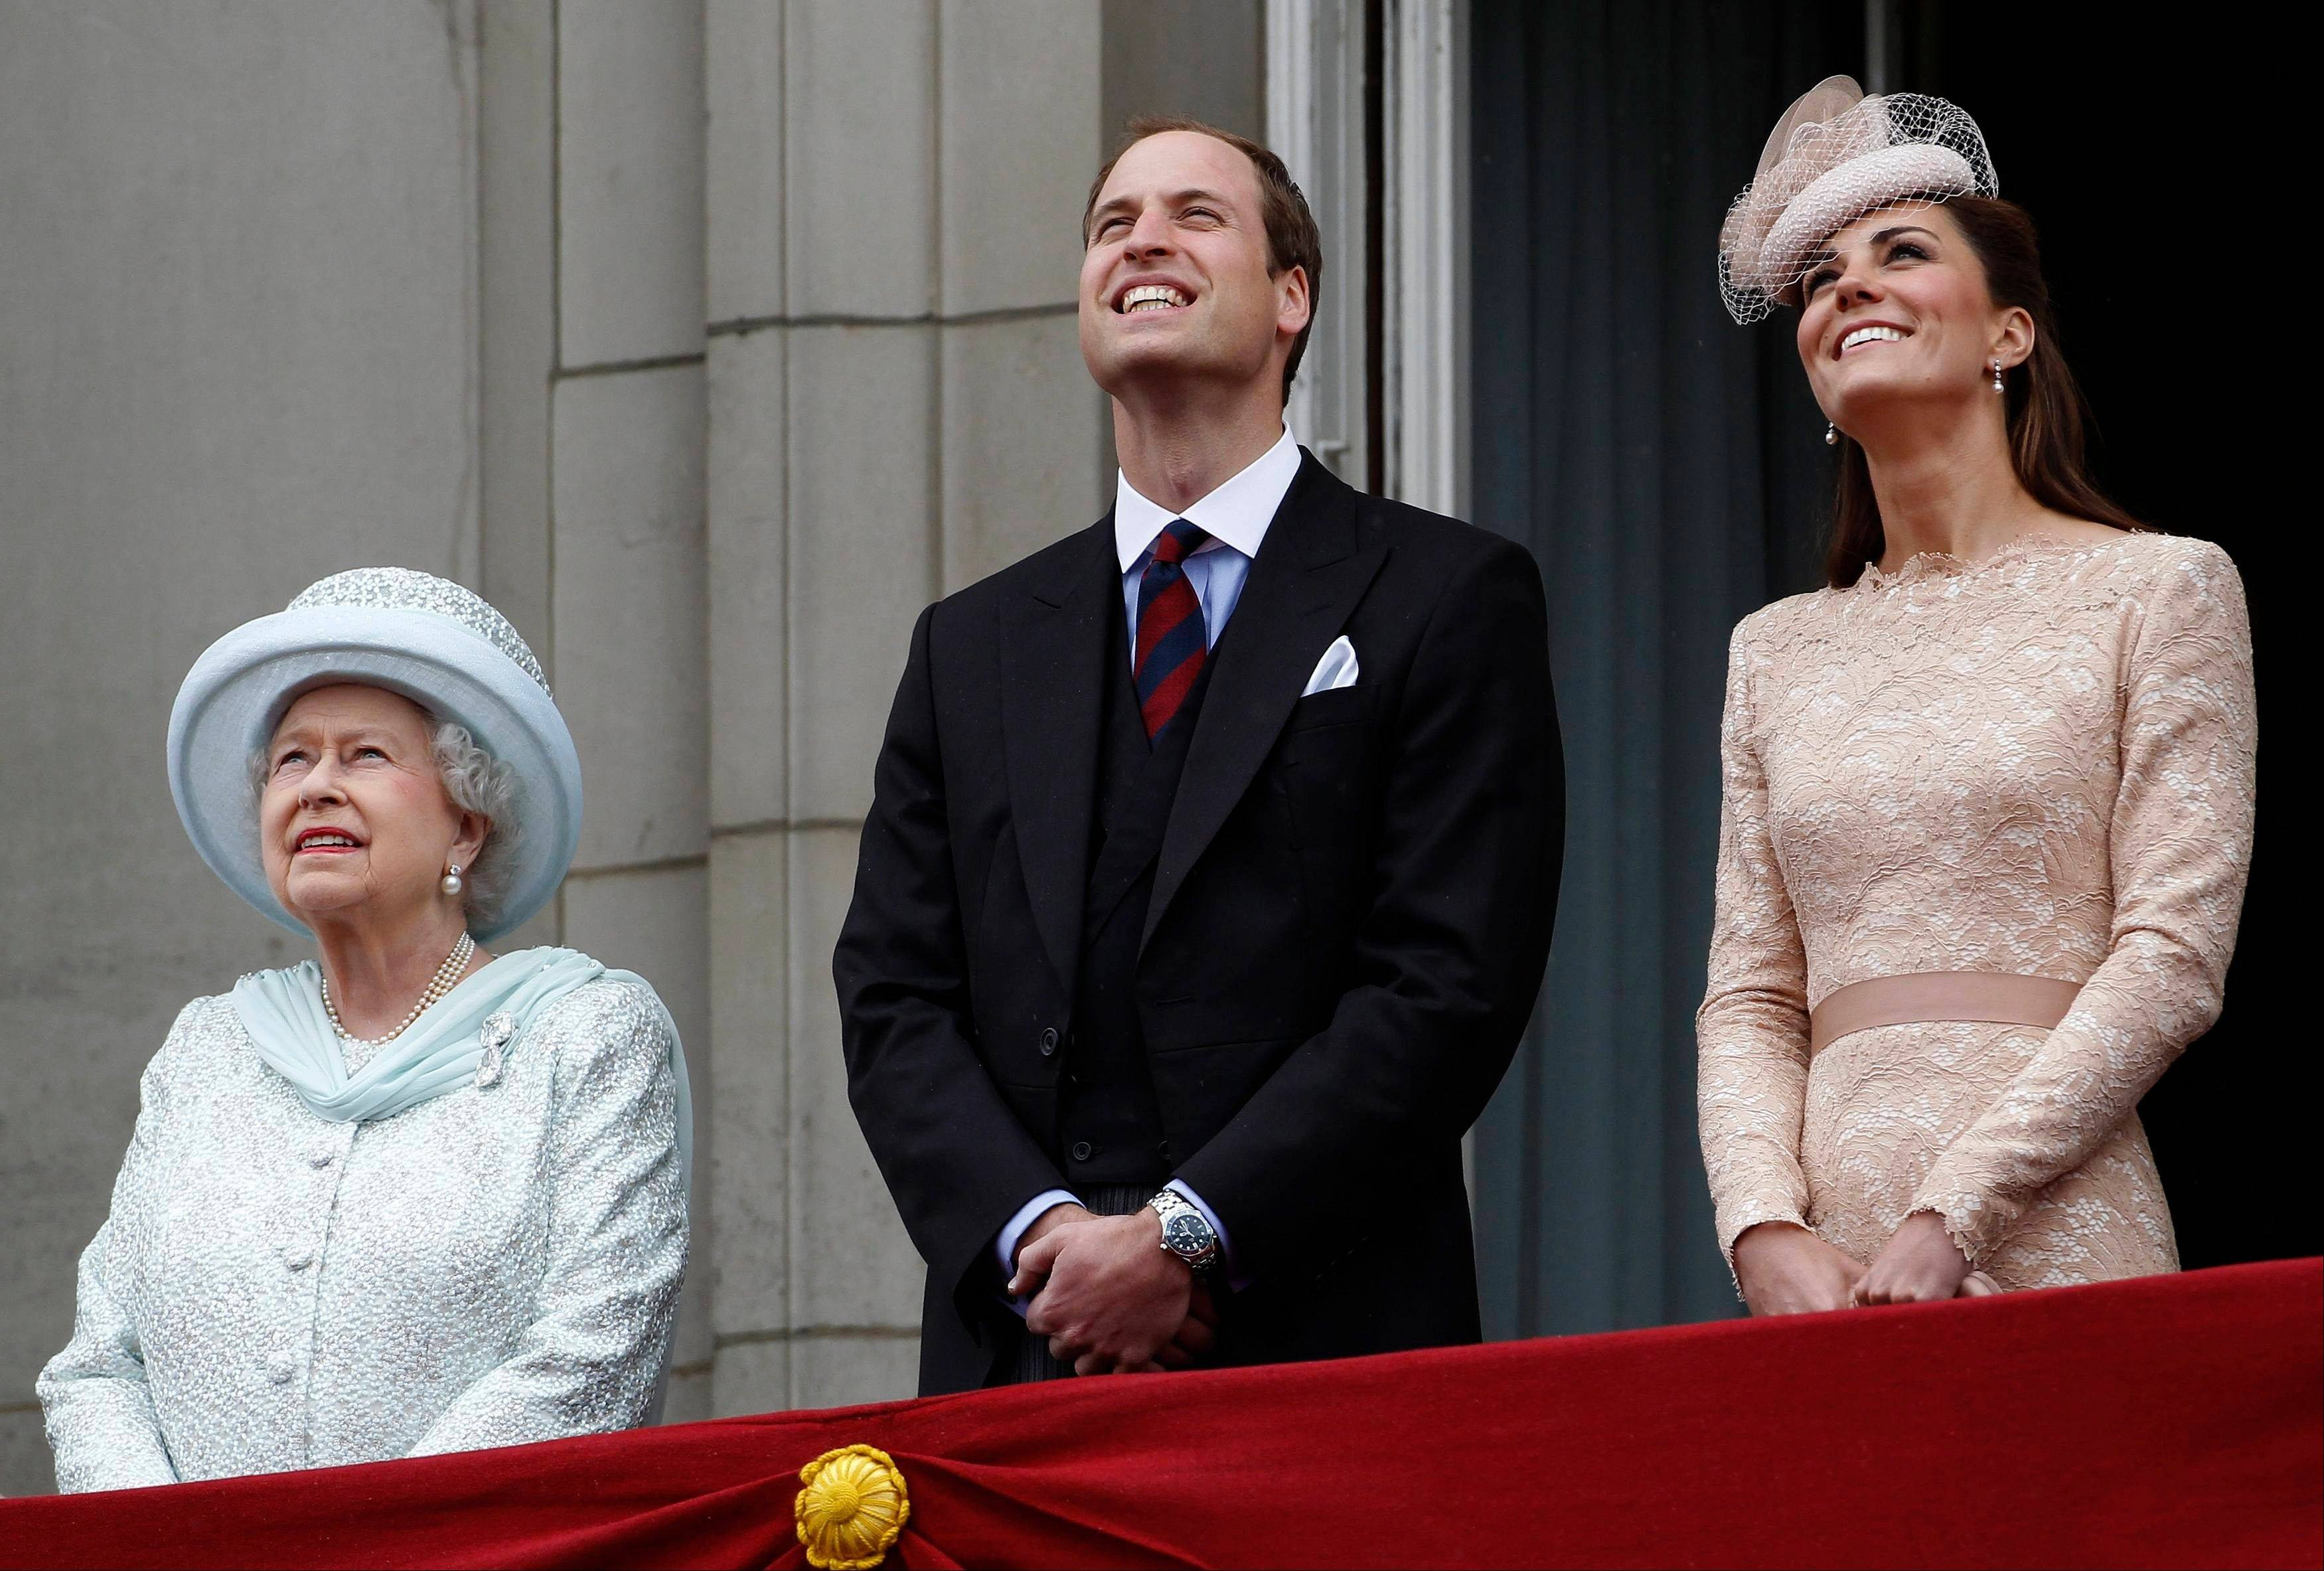 Britain's Queen Elizabeth Prince William, and his wife Kate Duchess of Cambridge, right, look up at a military fly-past as they stand on the balcony at Buckingham Palace during the Diamond Jubilee celebrations in central London Tuesday June 5, 2012. Four days of nationwide celebrations during which millions of people have turned out to mark the Queen's Diamond Jubilee conclude on Tuesday with a church service and carriage procession through central London.